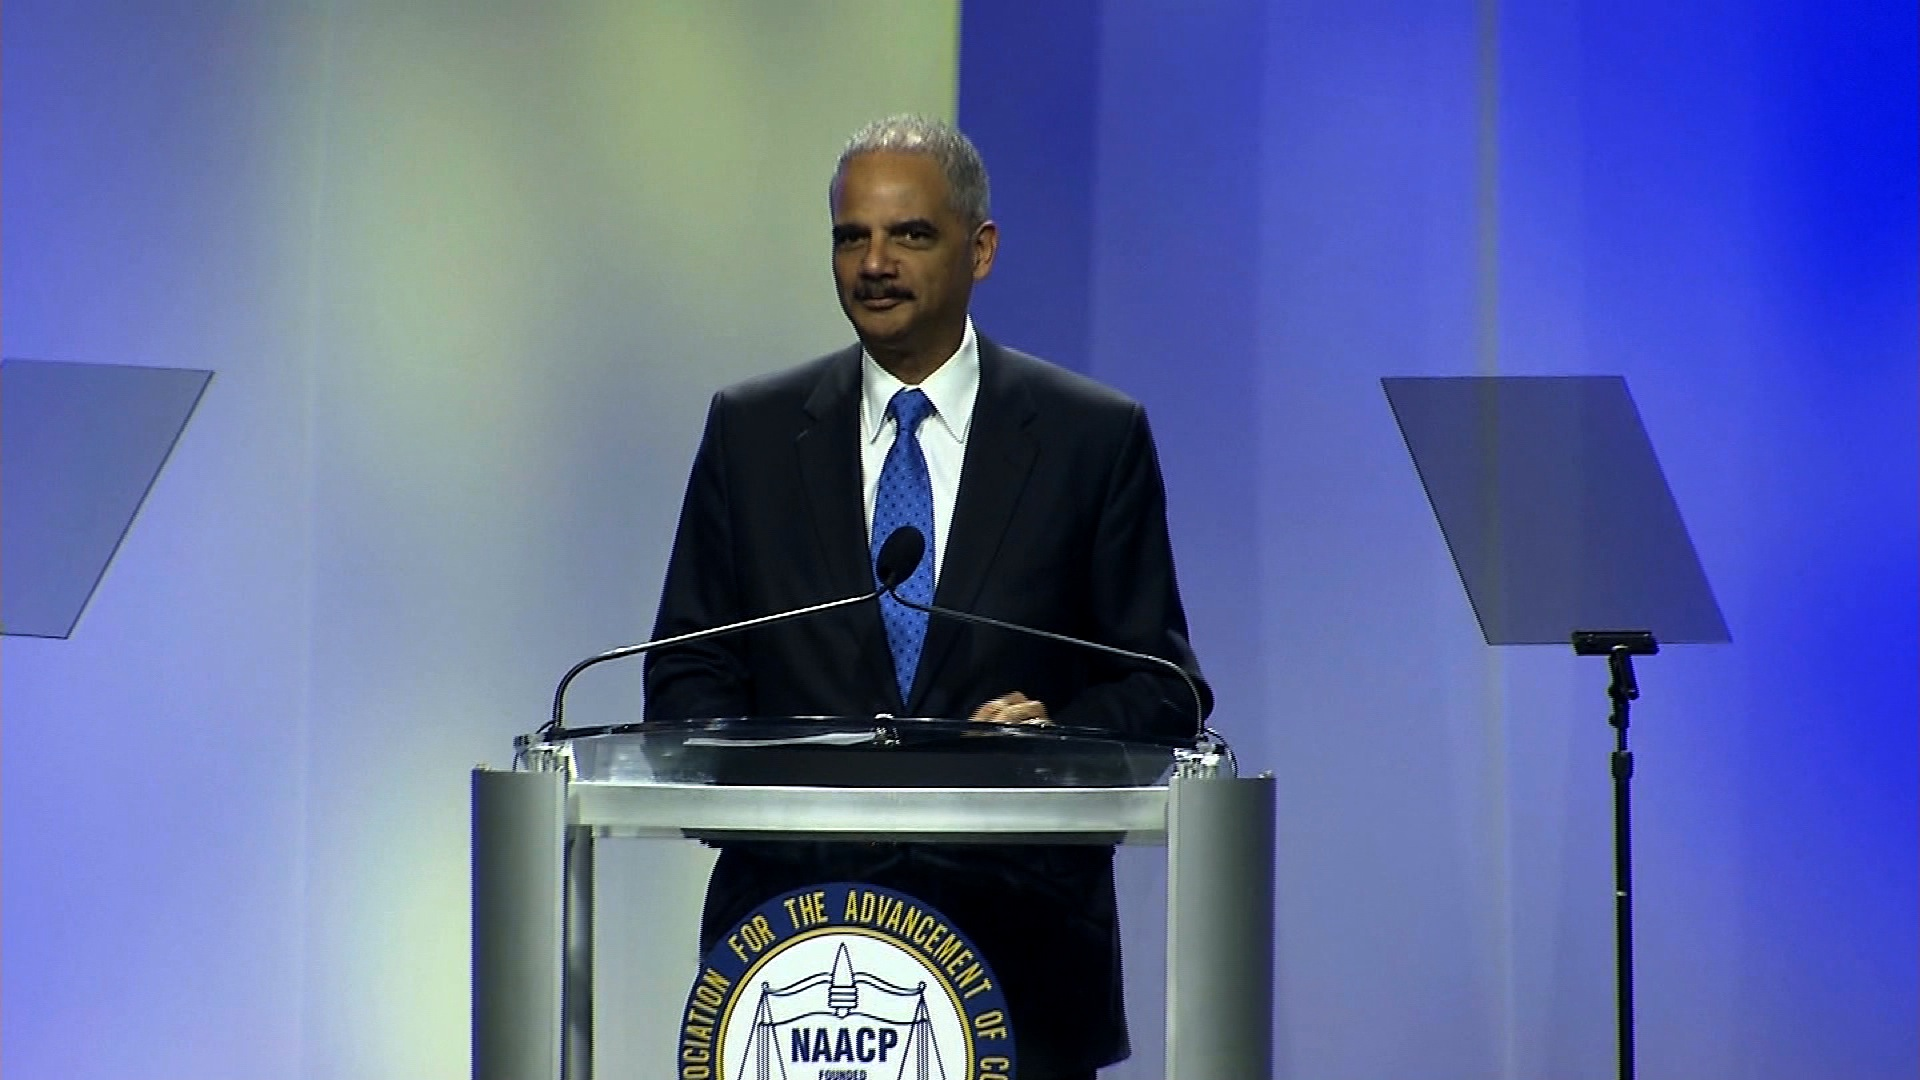 """Attorney General Eric Holder called for doing away with so-called """"stand your ground"""" self-defense laws Tuesday, July 16, 2013, telling the NAACP the statutes """"sow dangerous conflict in our neighborhoods"""" and allow """"violent situations to escalate in public."""""""